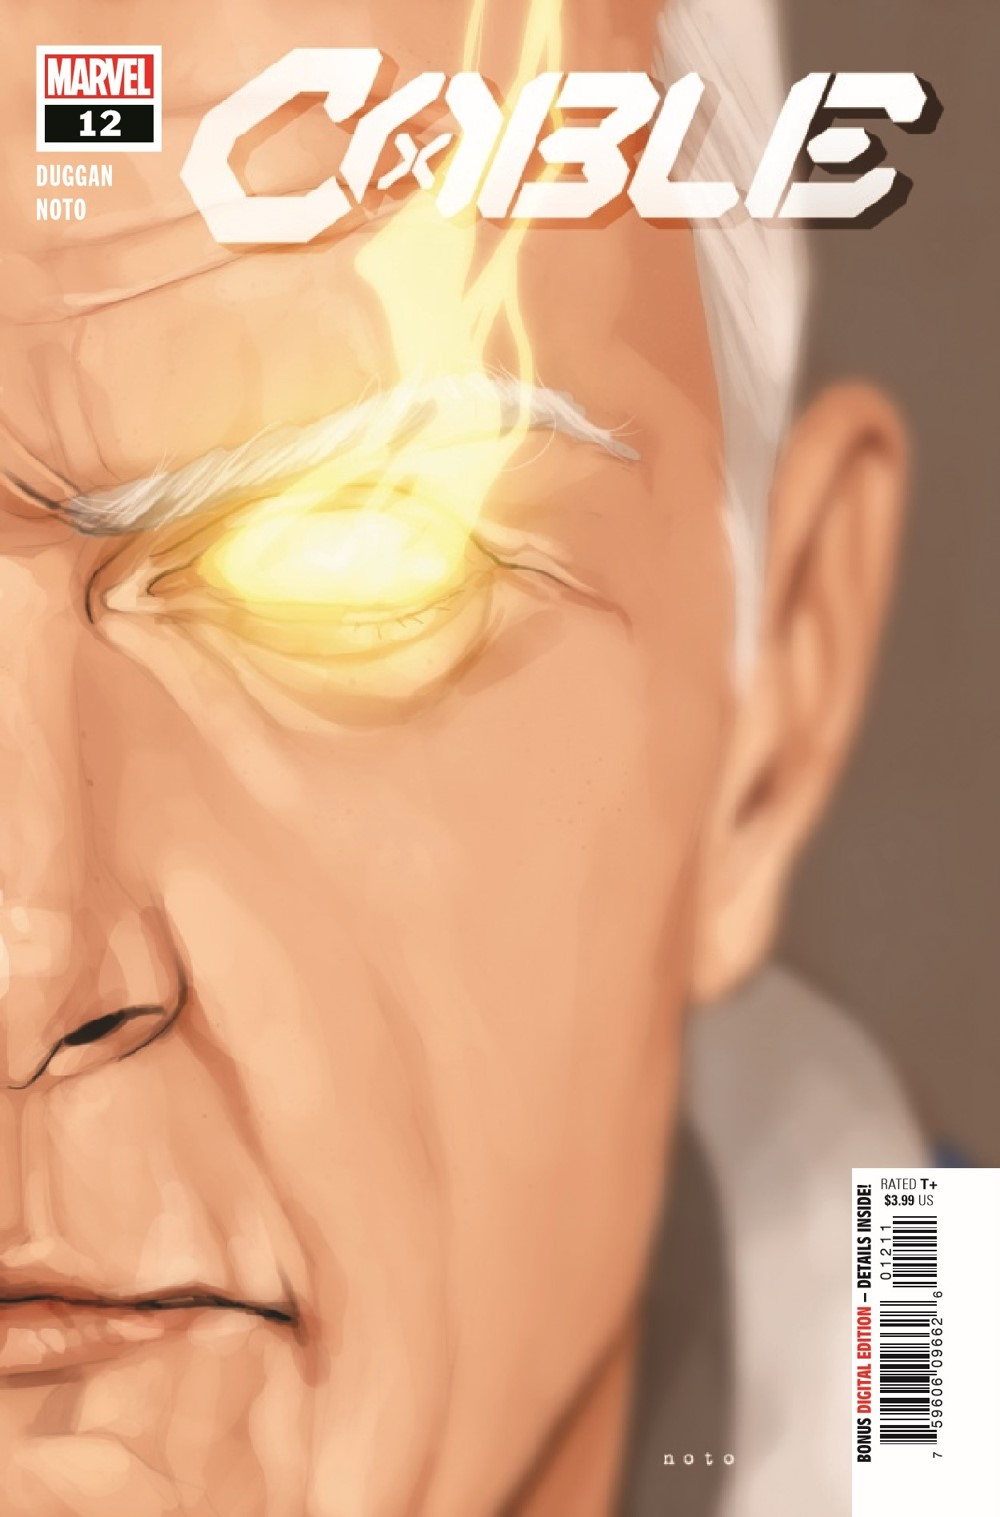 CABLE2020012_Preview-1 ComicList Previews: CABLE #12